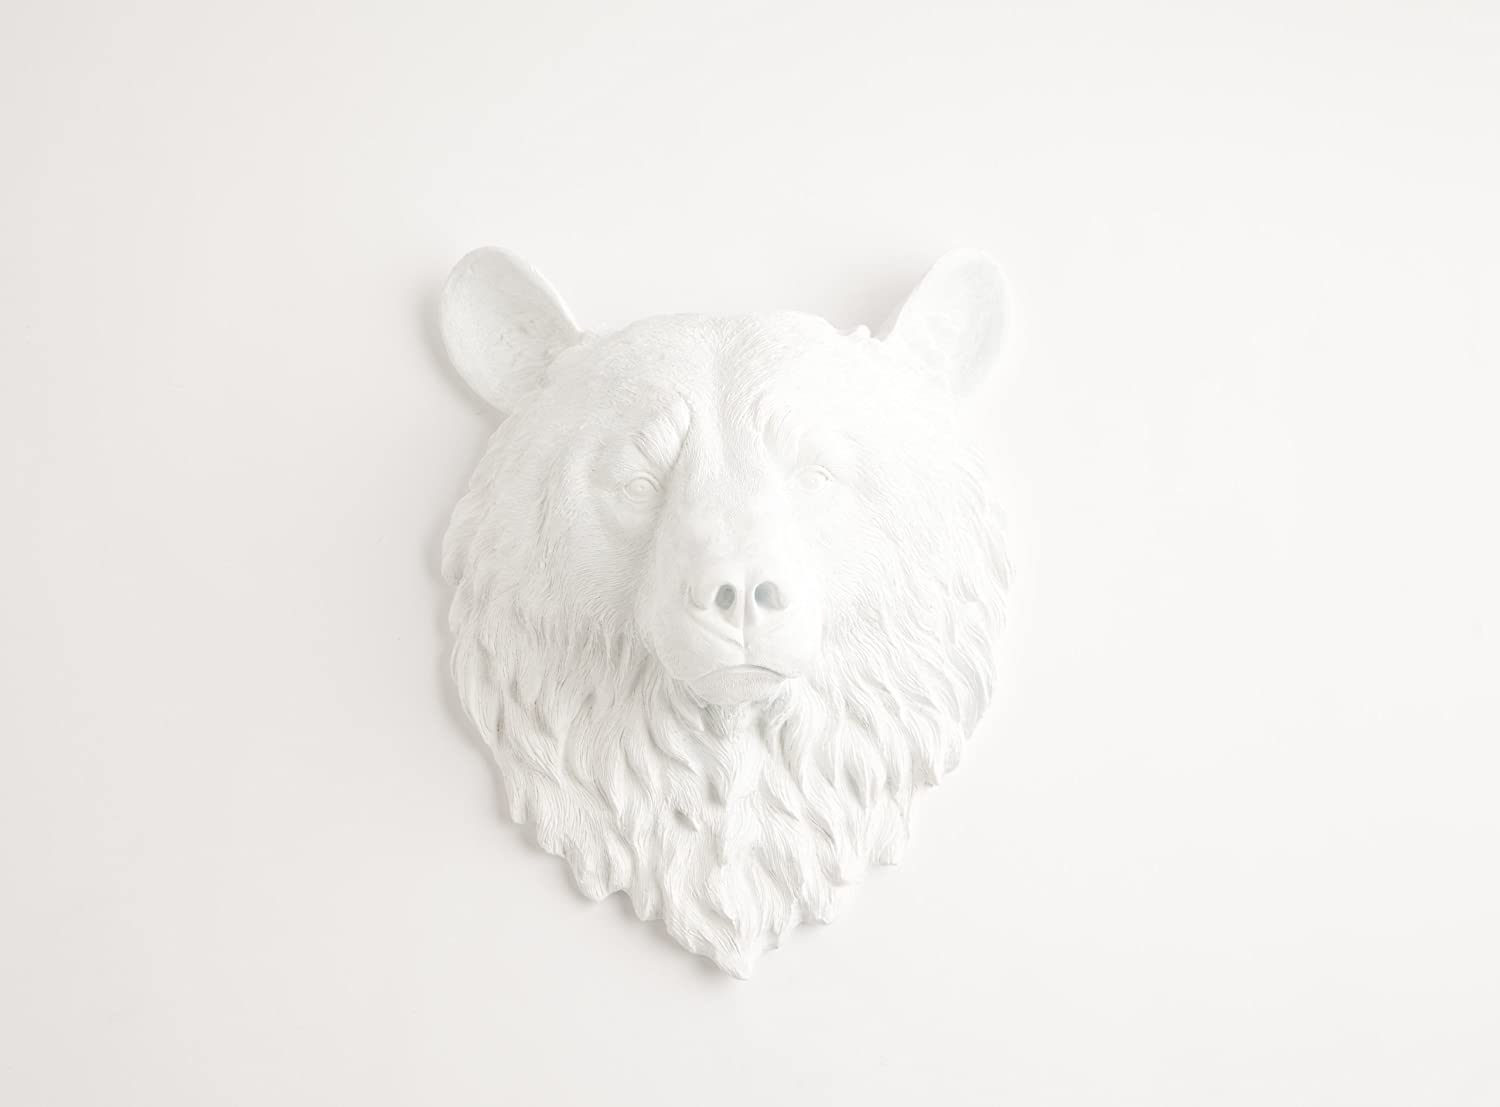 White Faux Taxidermy The Raleigh | White Resin Bear Head | Resin Hanging Wall Decor Sculpture | Animal Mounts | Trophy Taxidermy